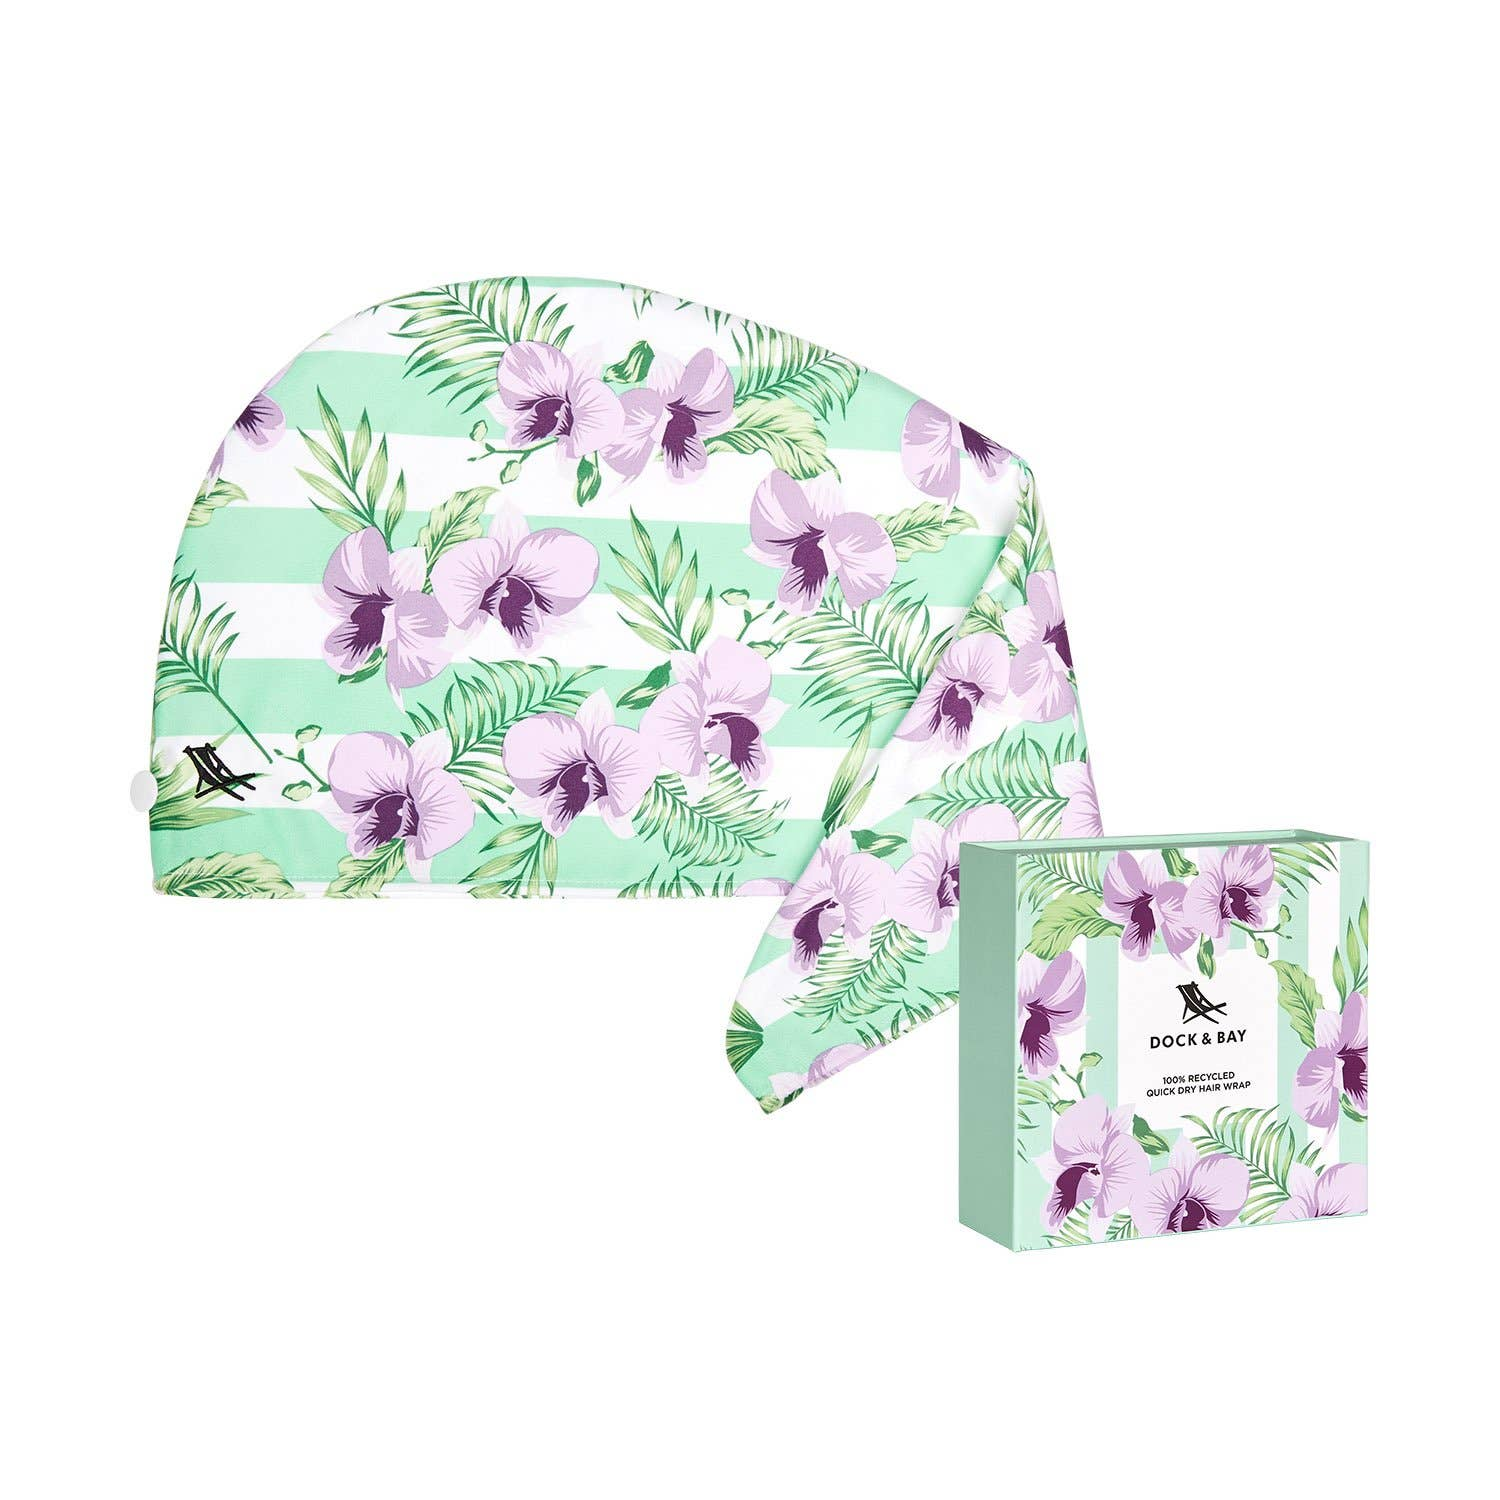 Dock & Bay Hair Wrap - Quick Dry Hair Towel - Orchid Utopia